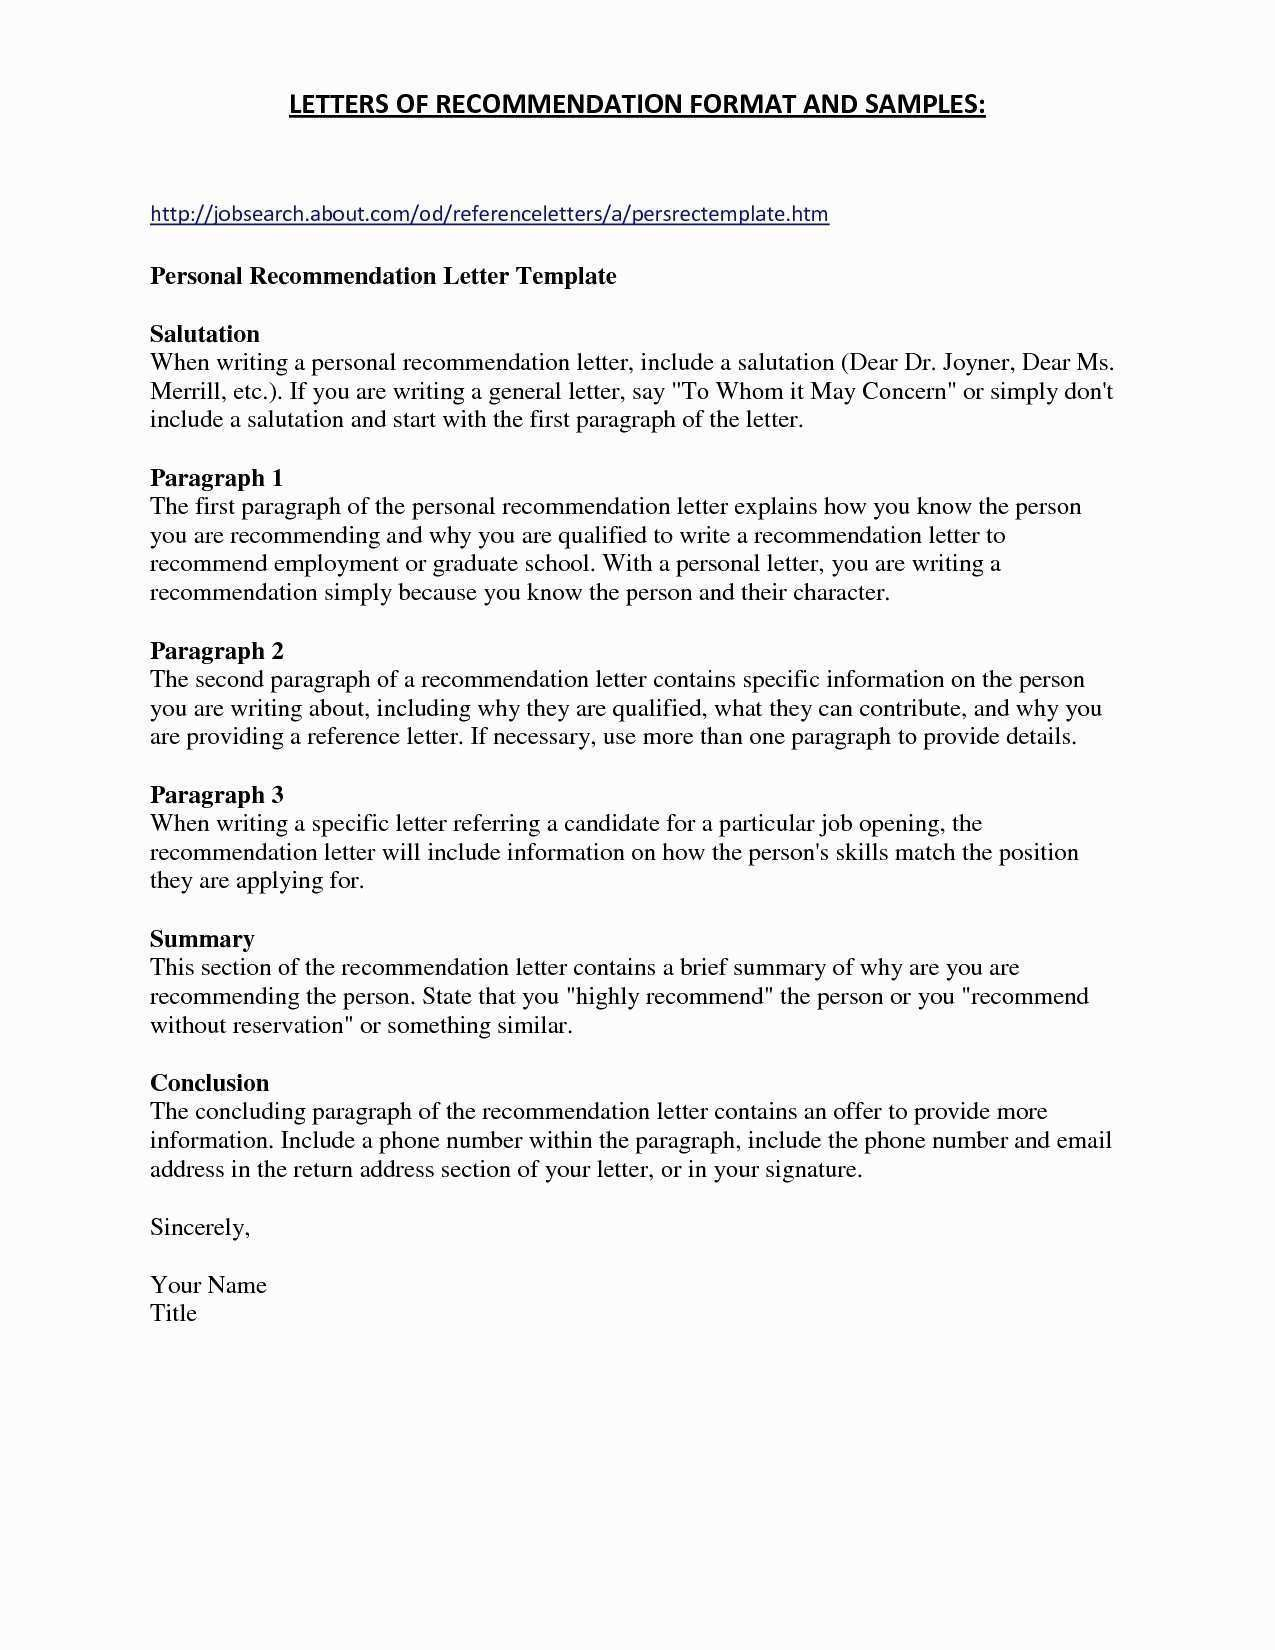 Credit Dispute Letter Template Pdf - Job Re Mendation Letter Template New Dispute Letter to Credit